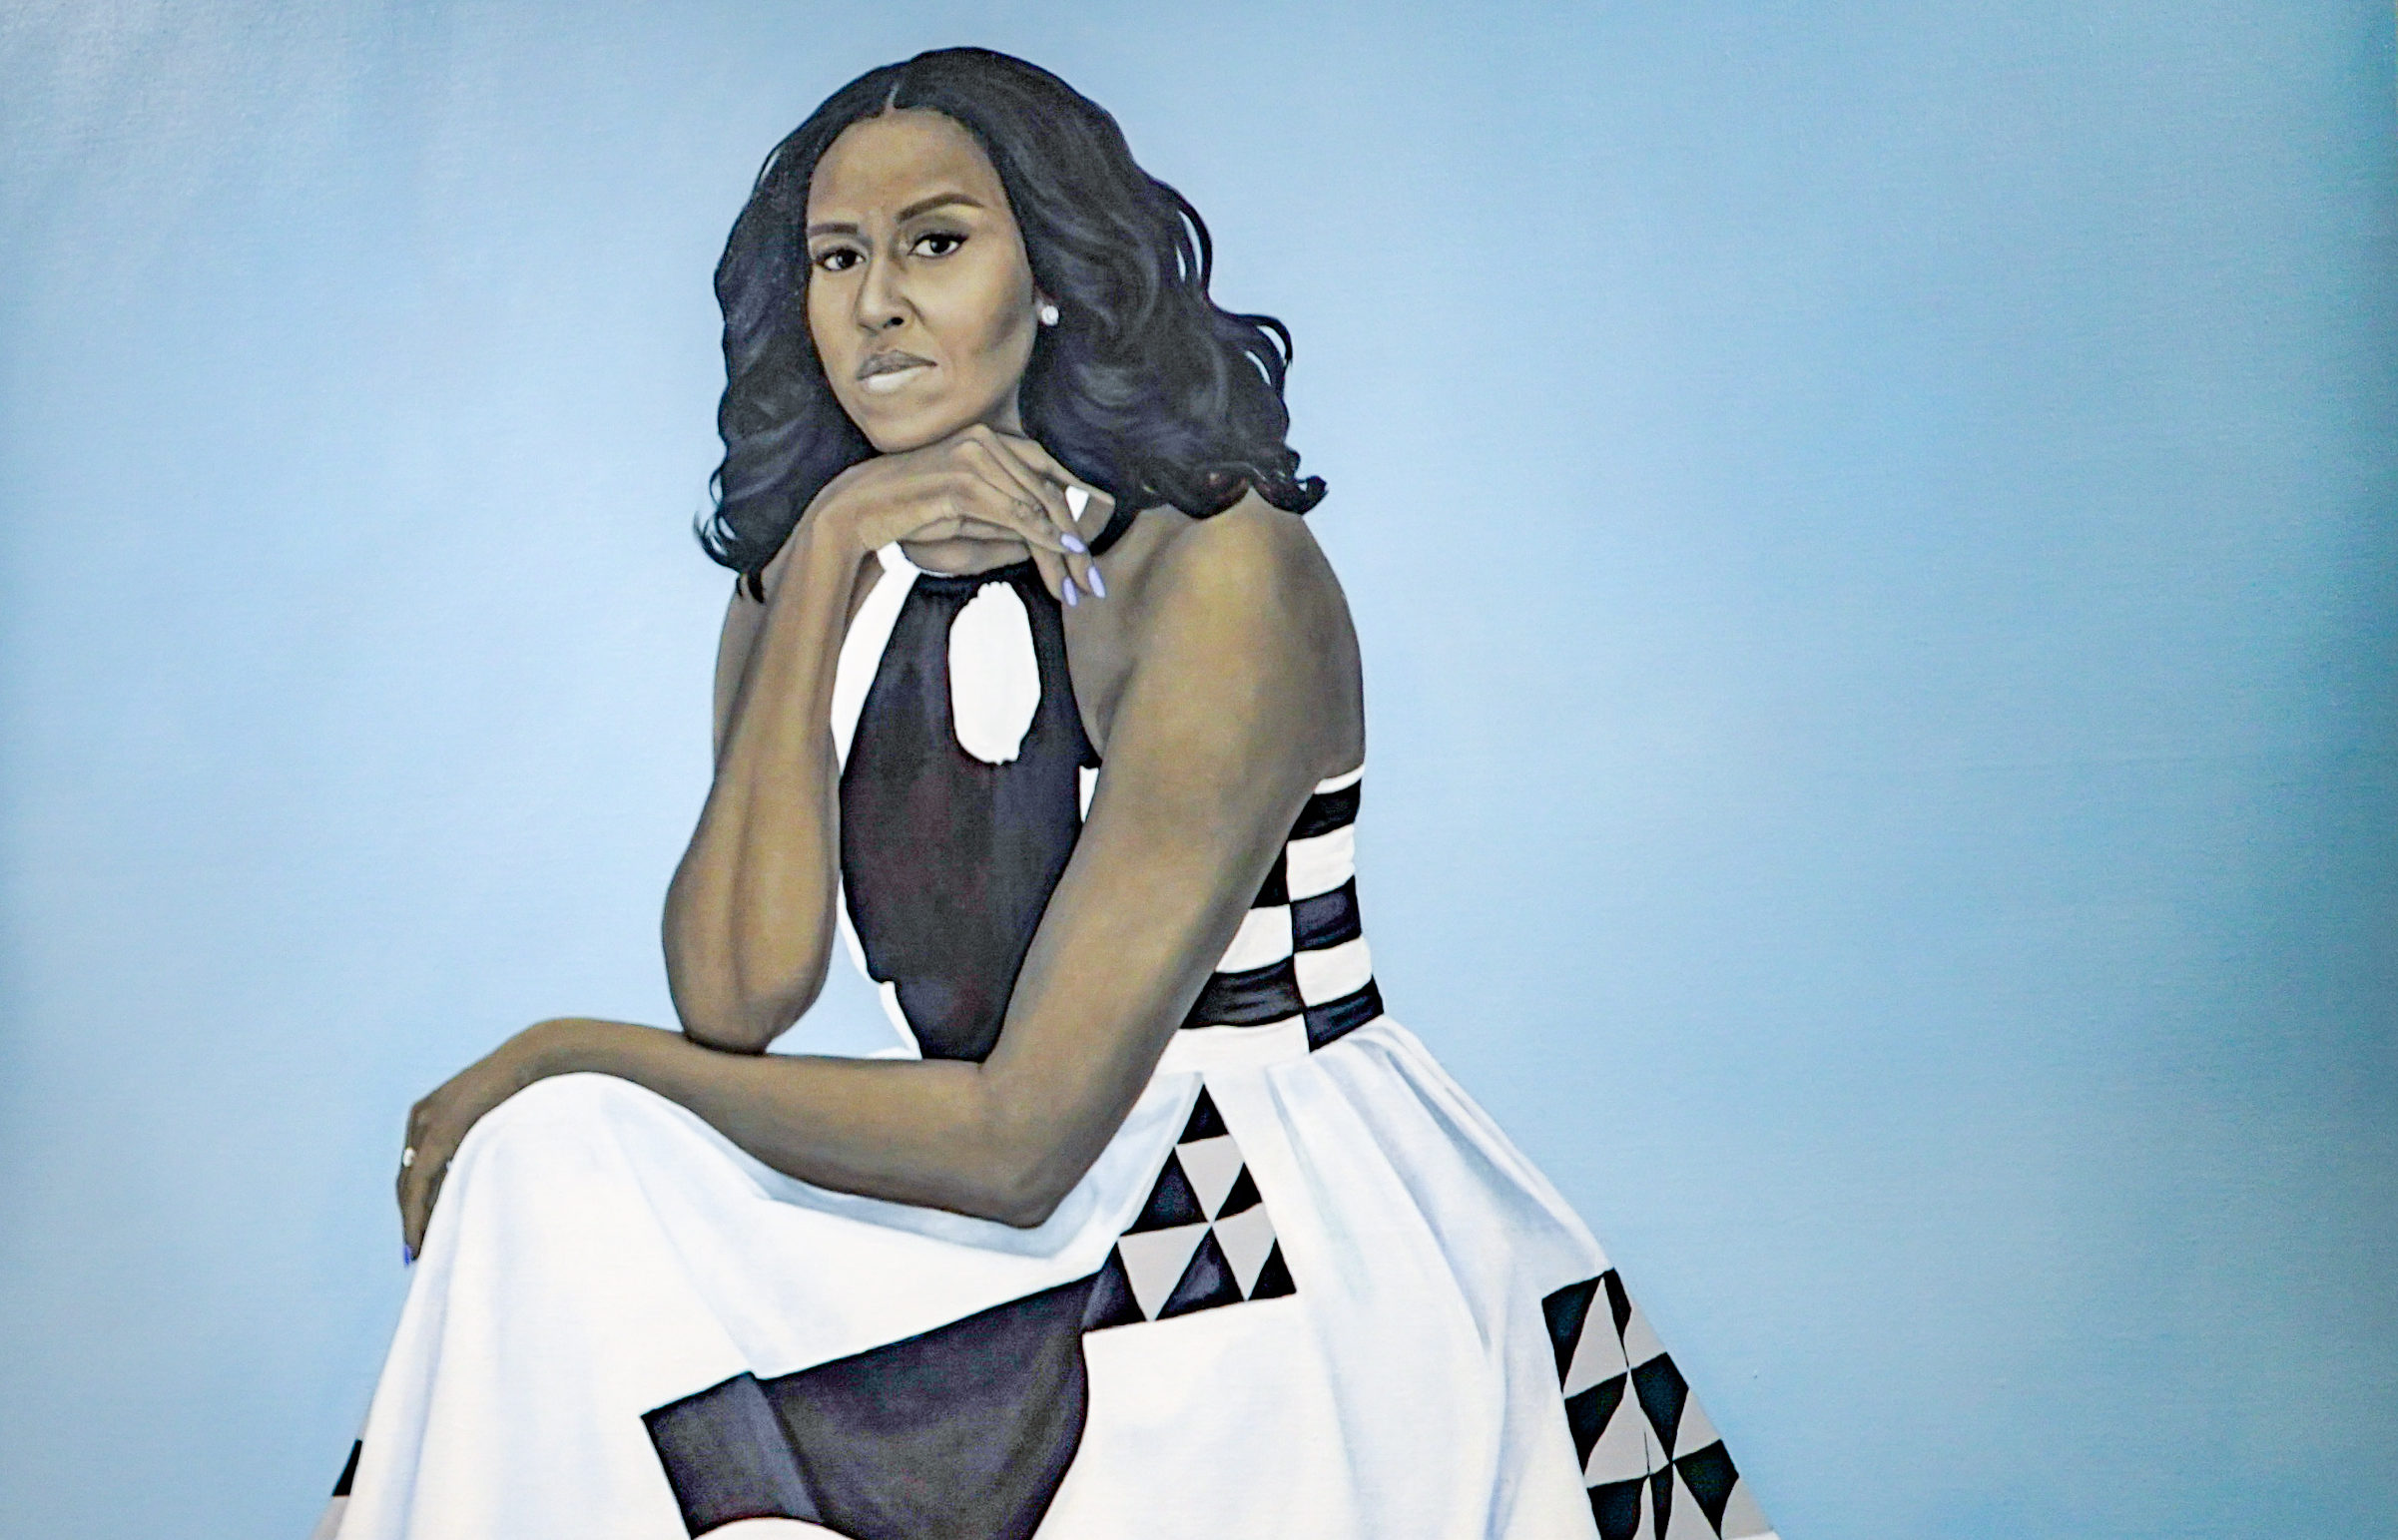 Michelle Obama Cashing In The Limelight With Beyoncé Style